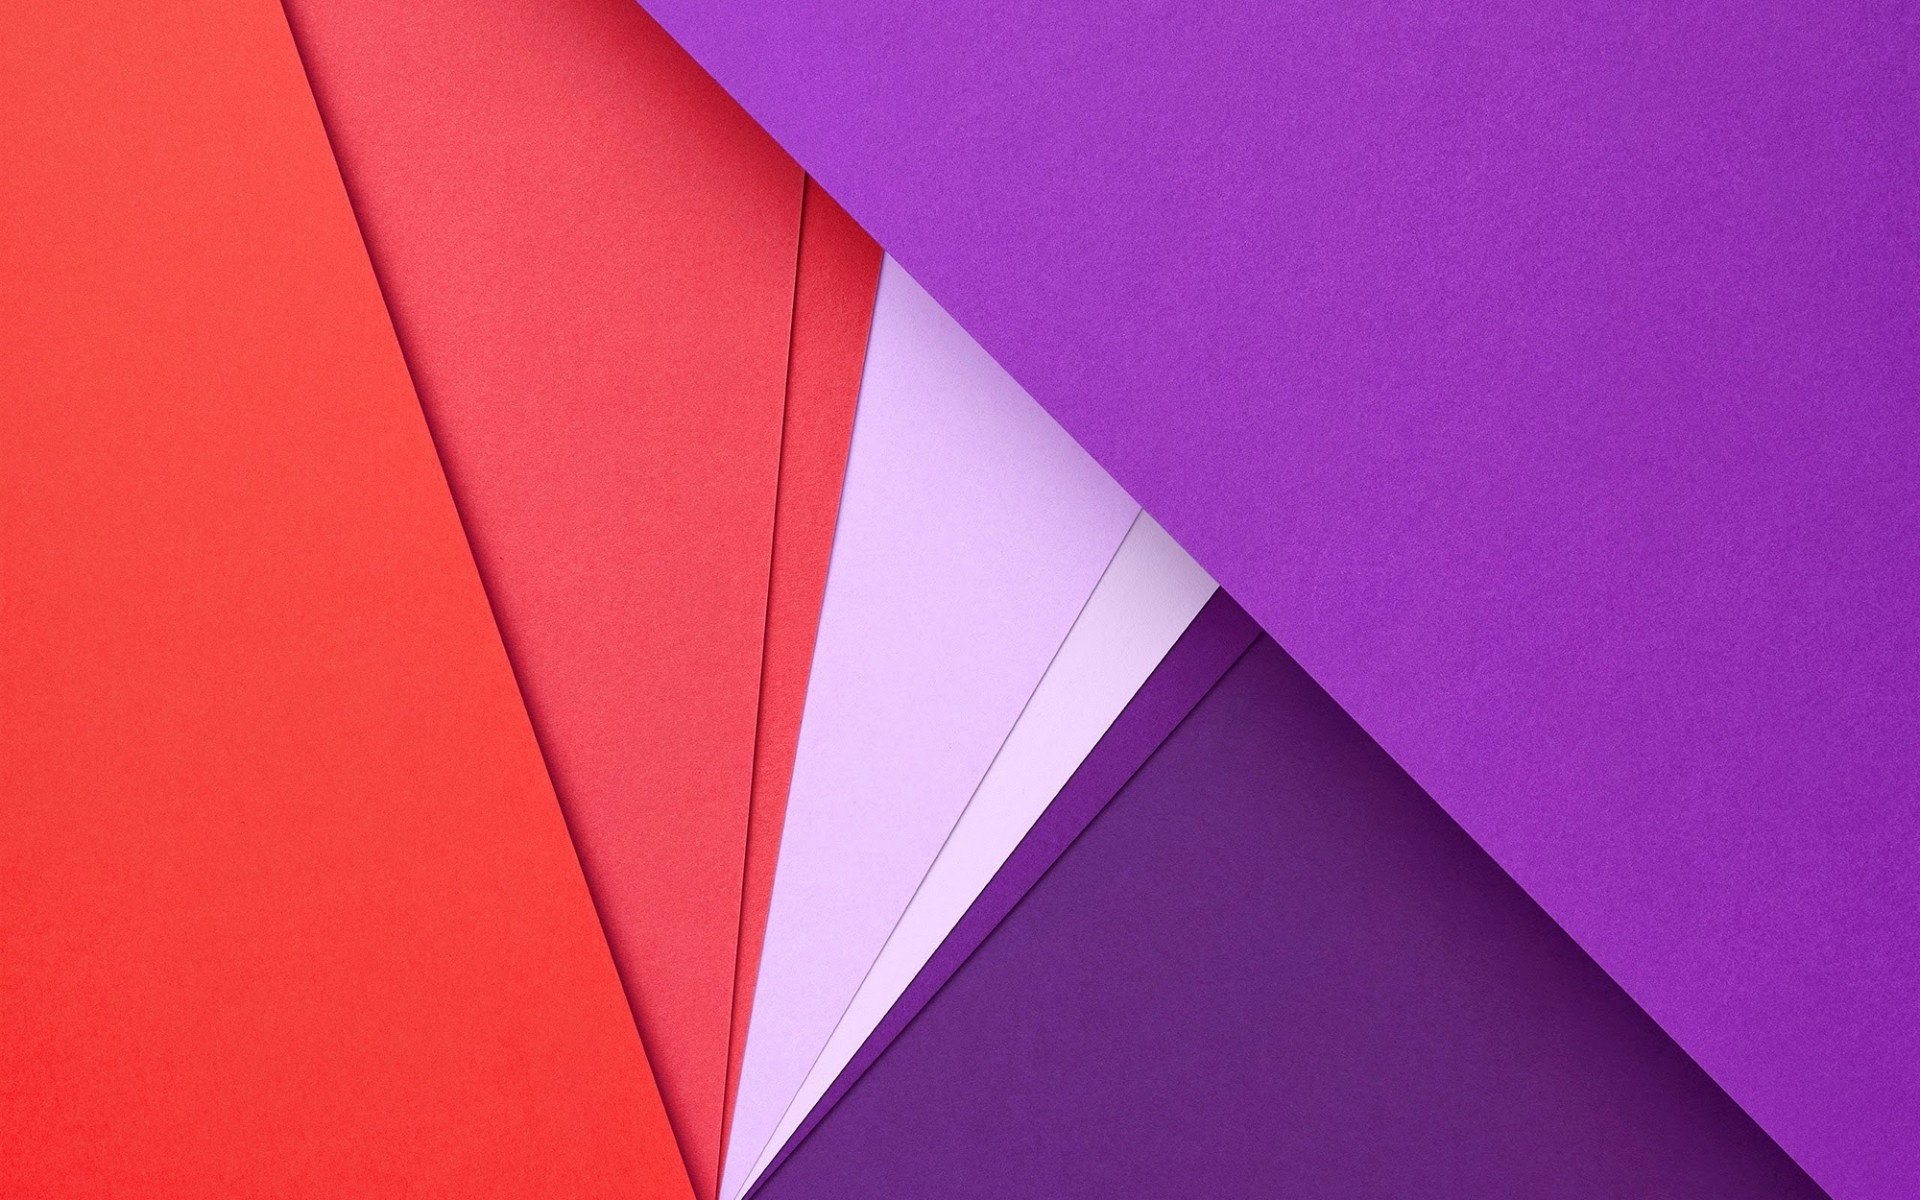 Desktop Wallpaper 222 – Fogli colorati per origami